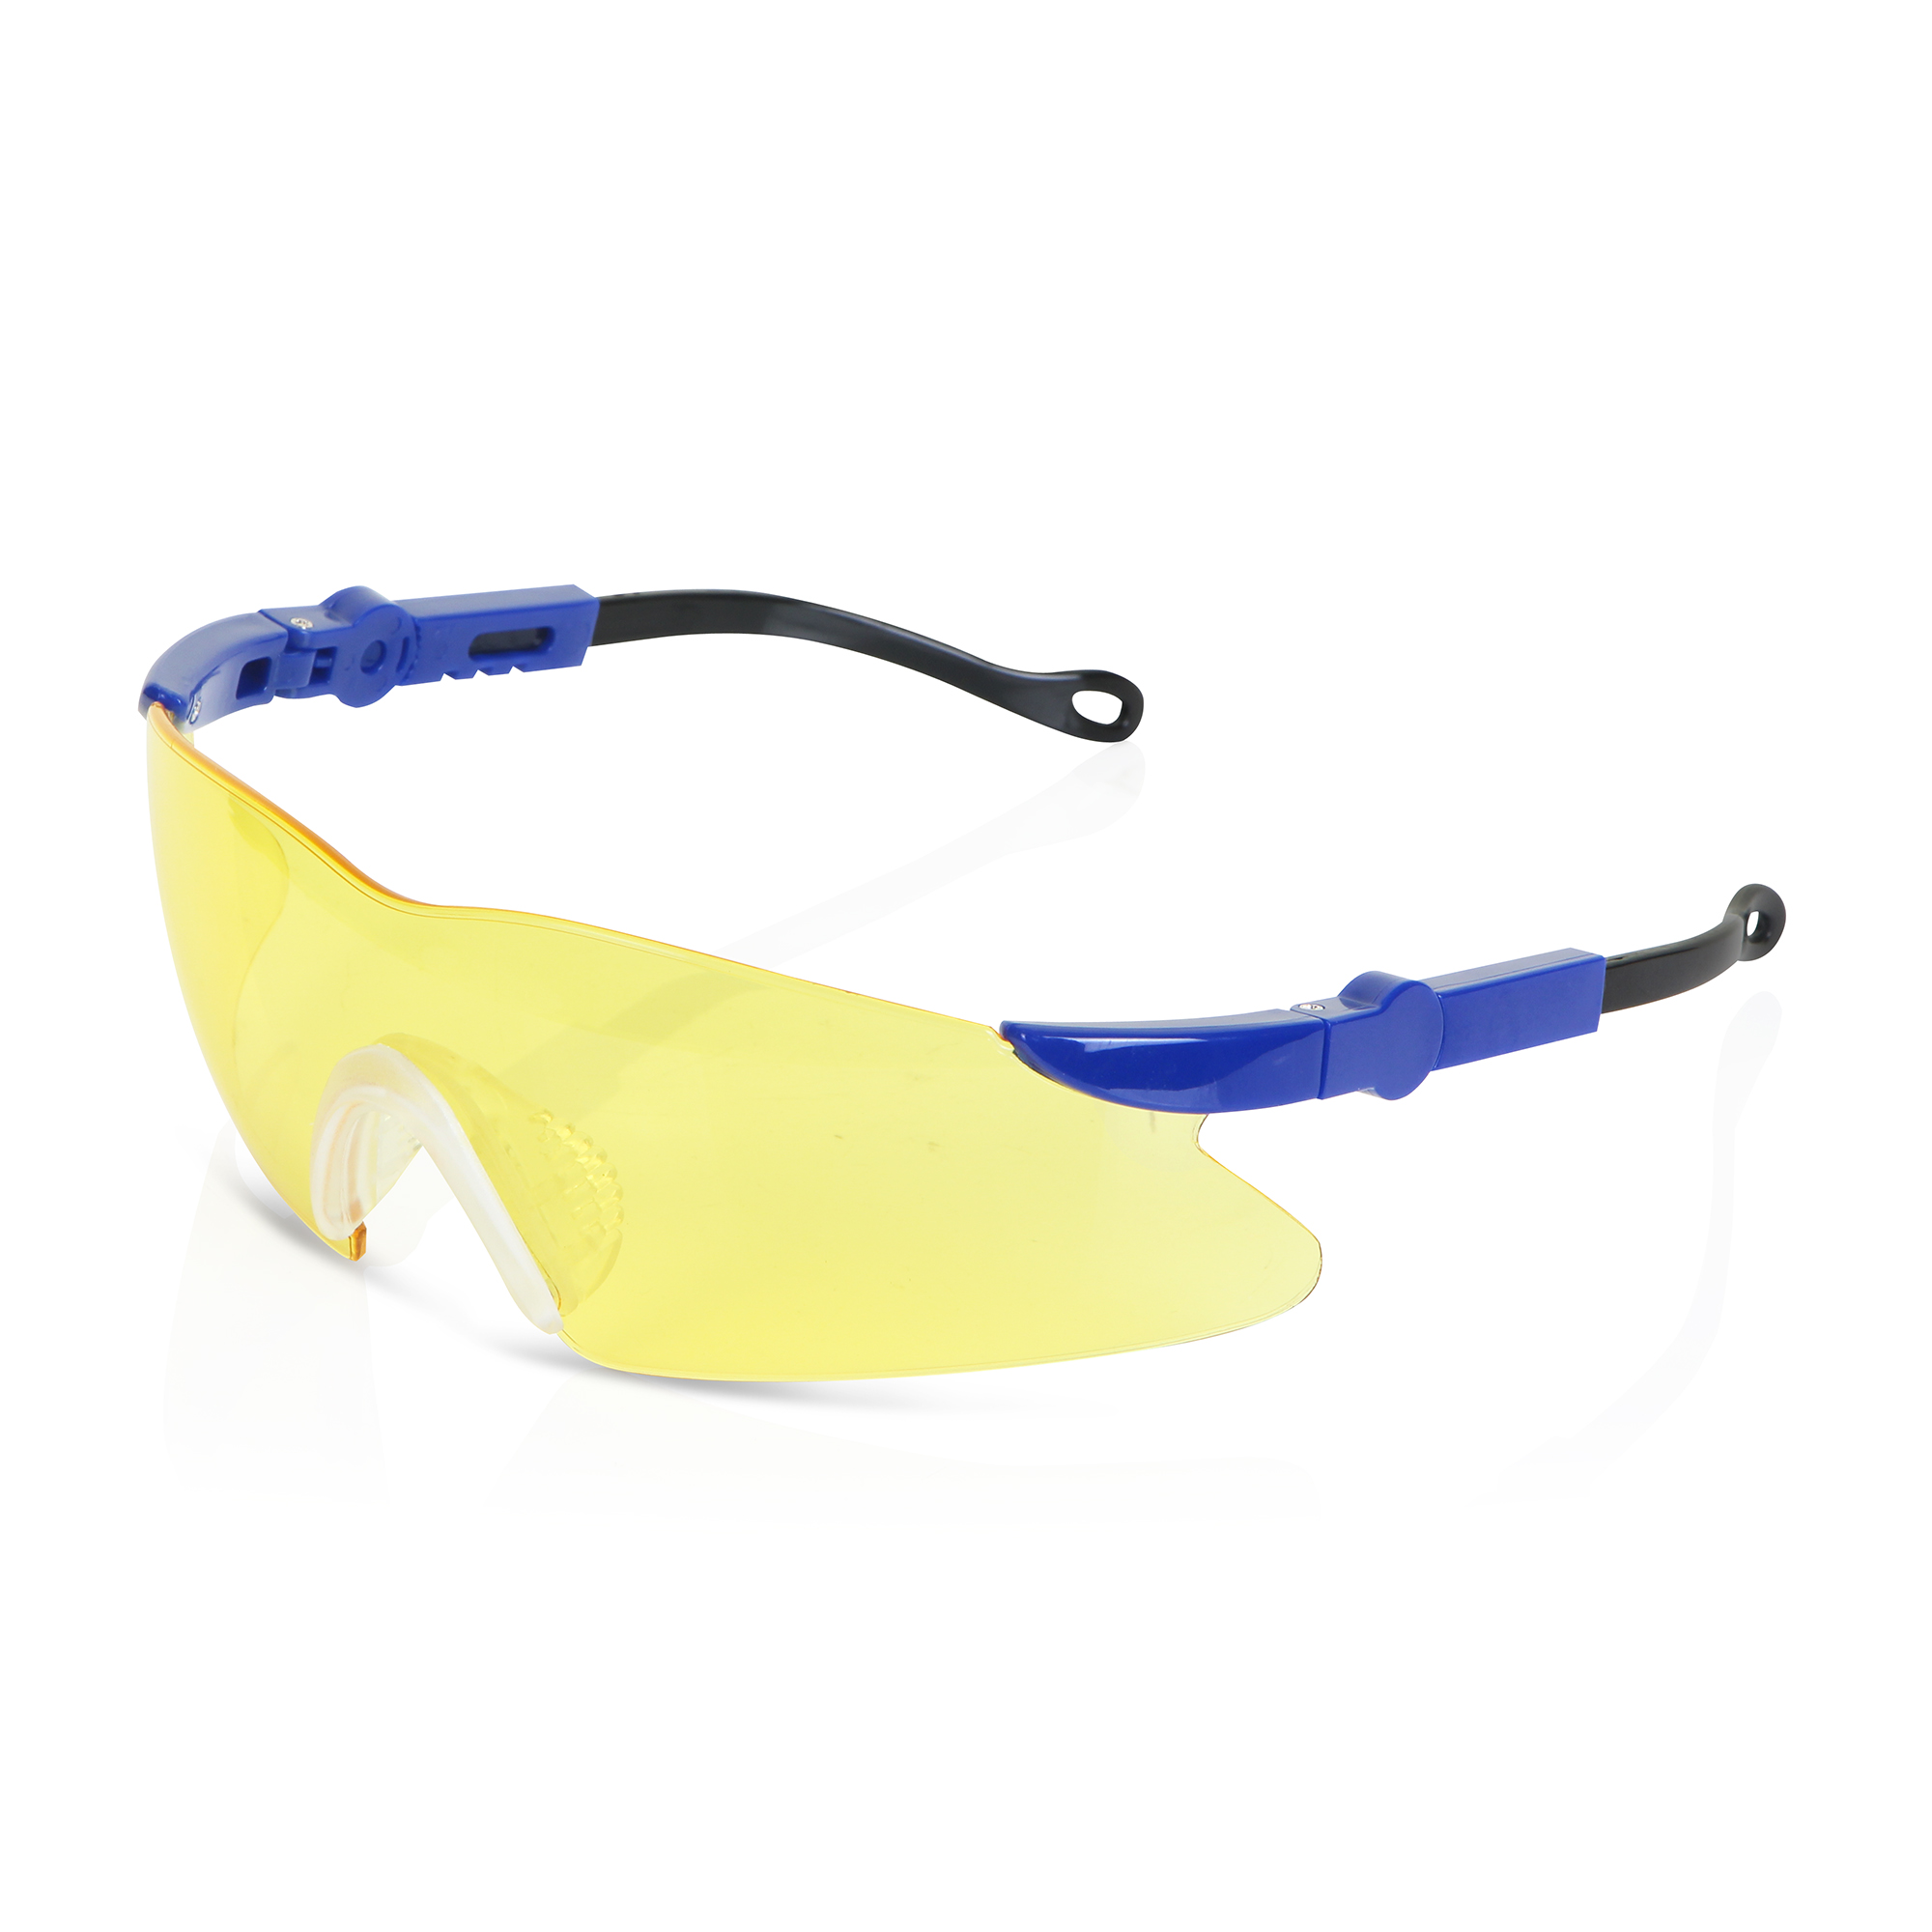 B-Brand Texas Safety Spectacles with Adjustable Side Arms Yellow Ref BBTXS2Y  Up to 3 Day Leadtime